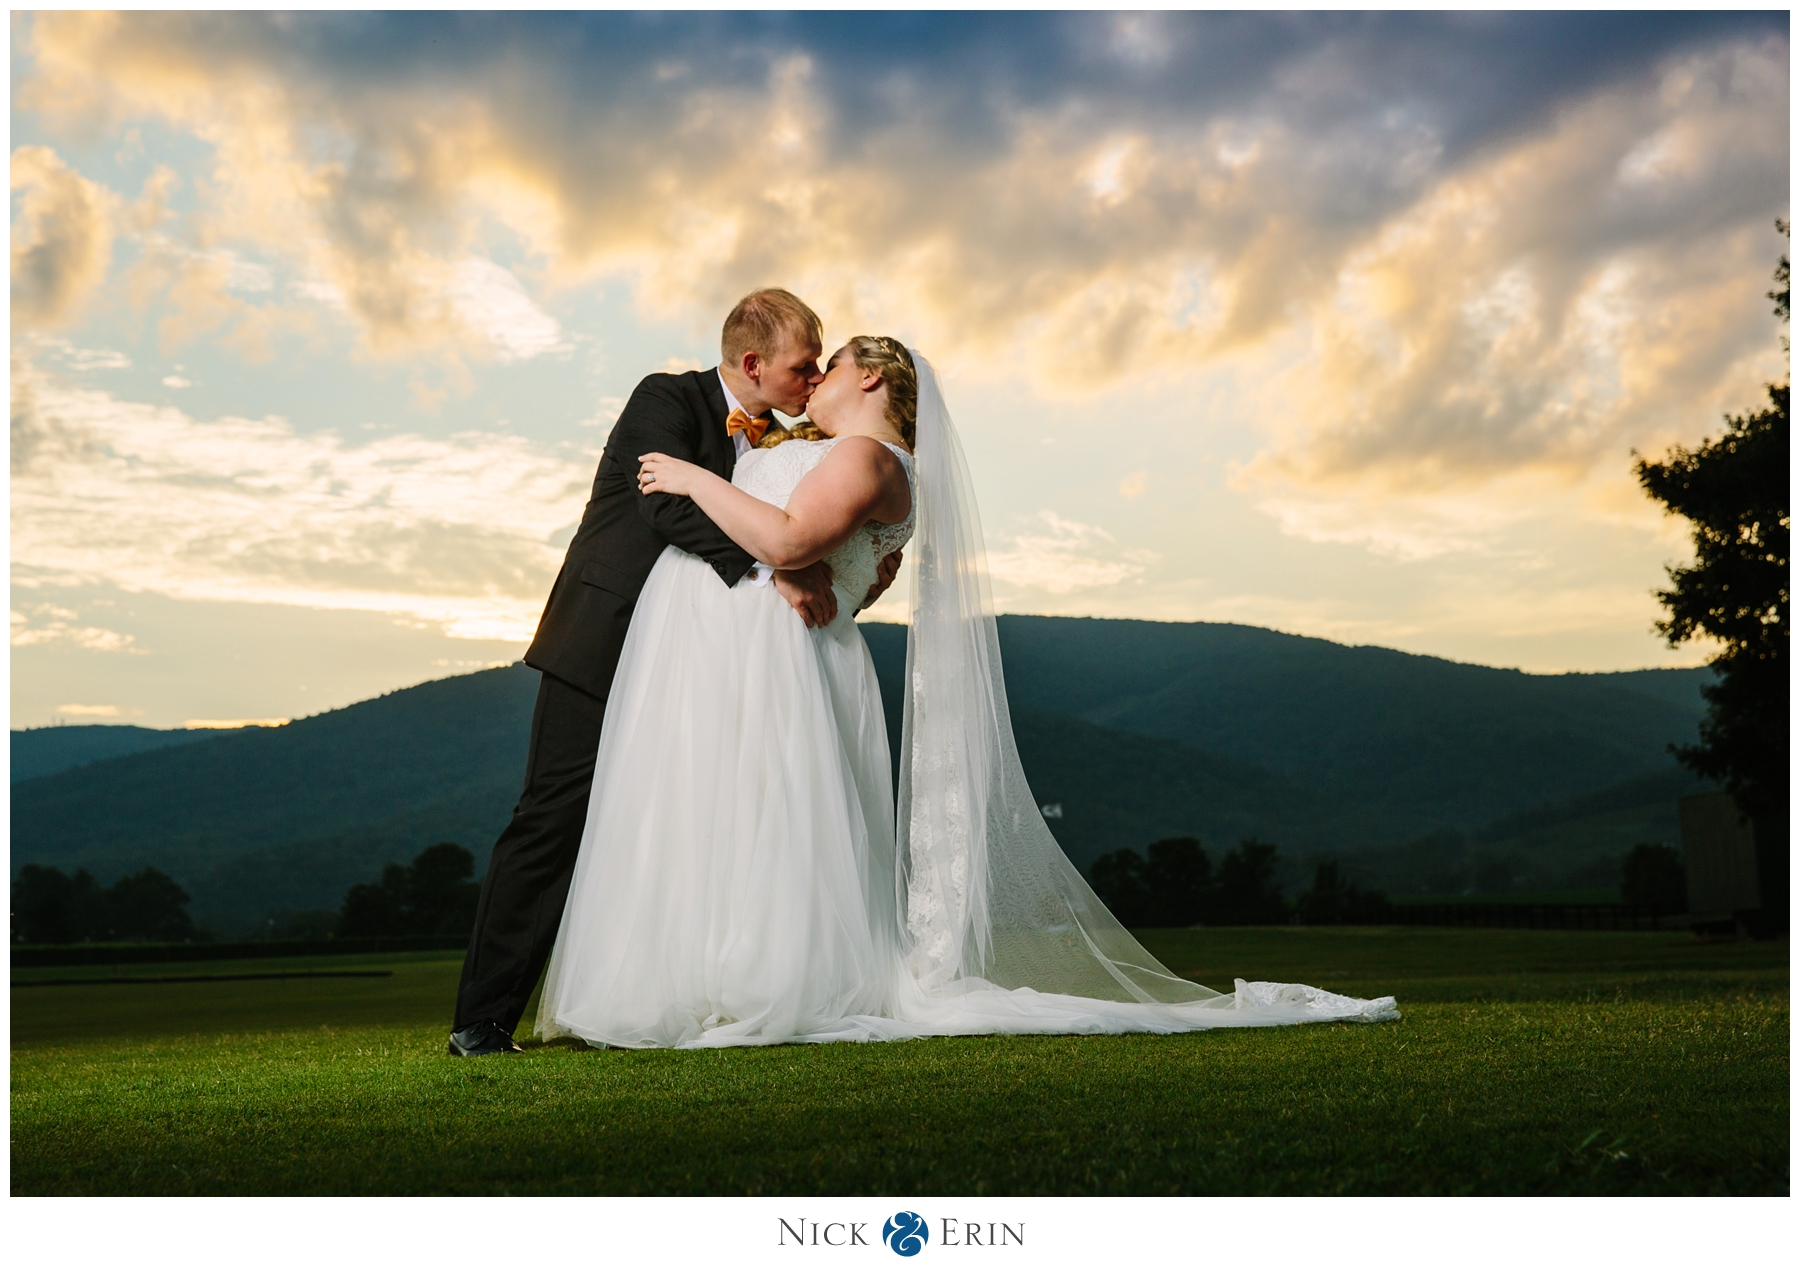 Donner_Photography_Charlottesville Virginia Wedding_Jennifer & Chris_0060